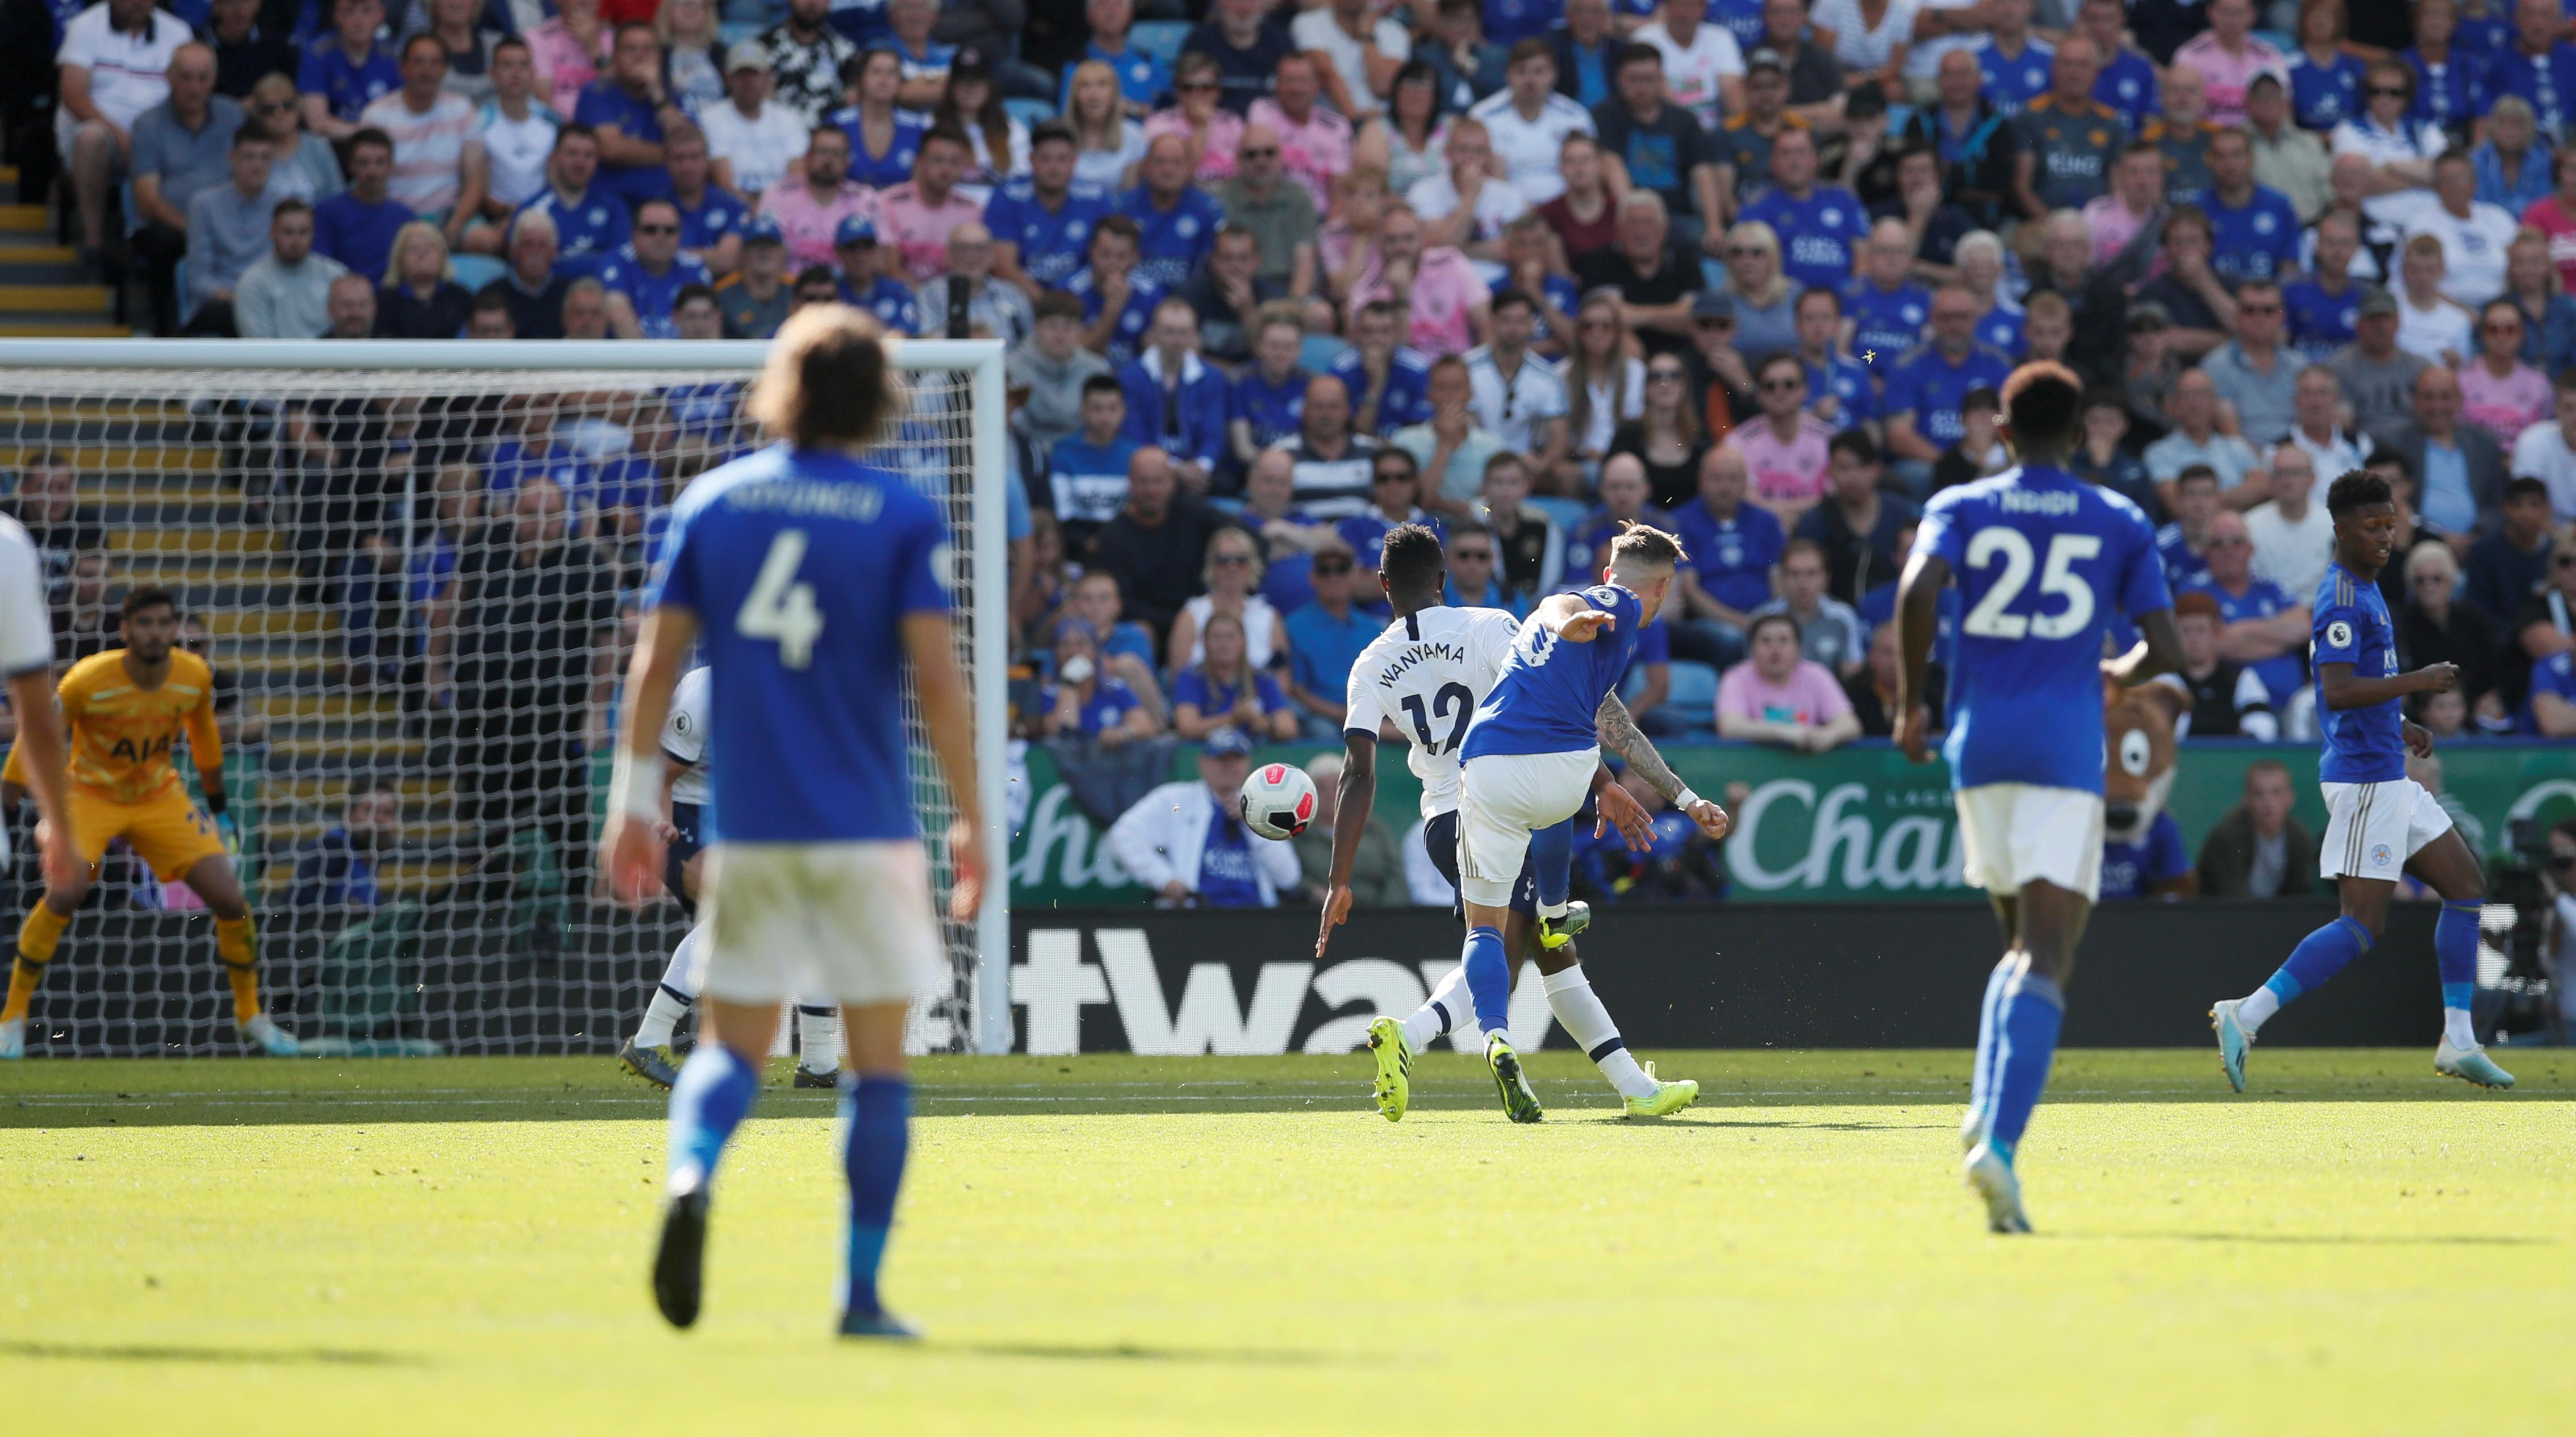 Maddison fires Leicester to win over Spurs amid VAR drama